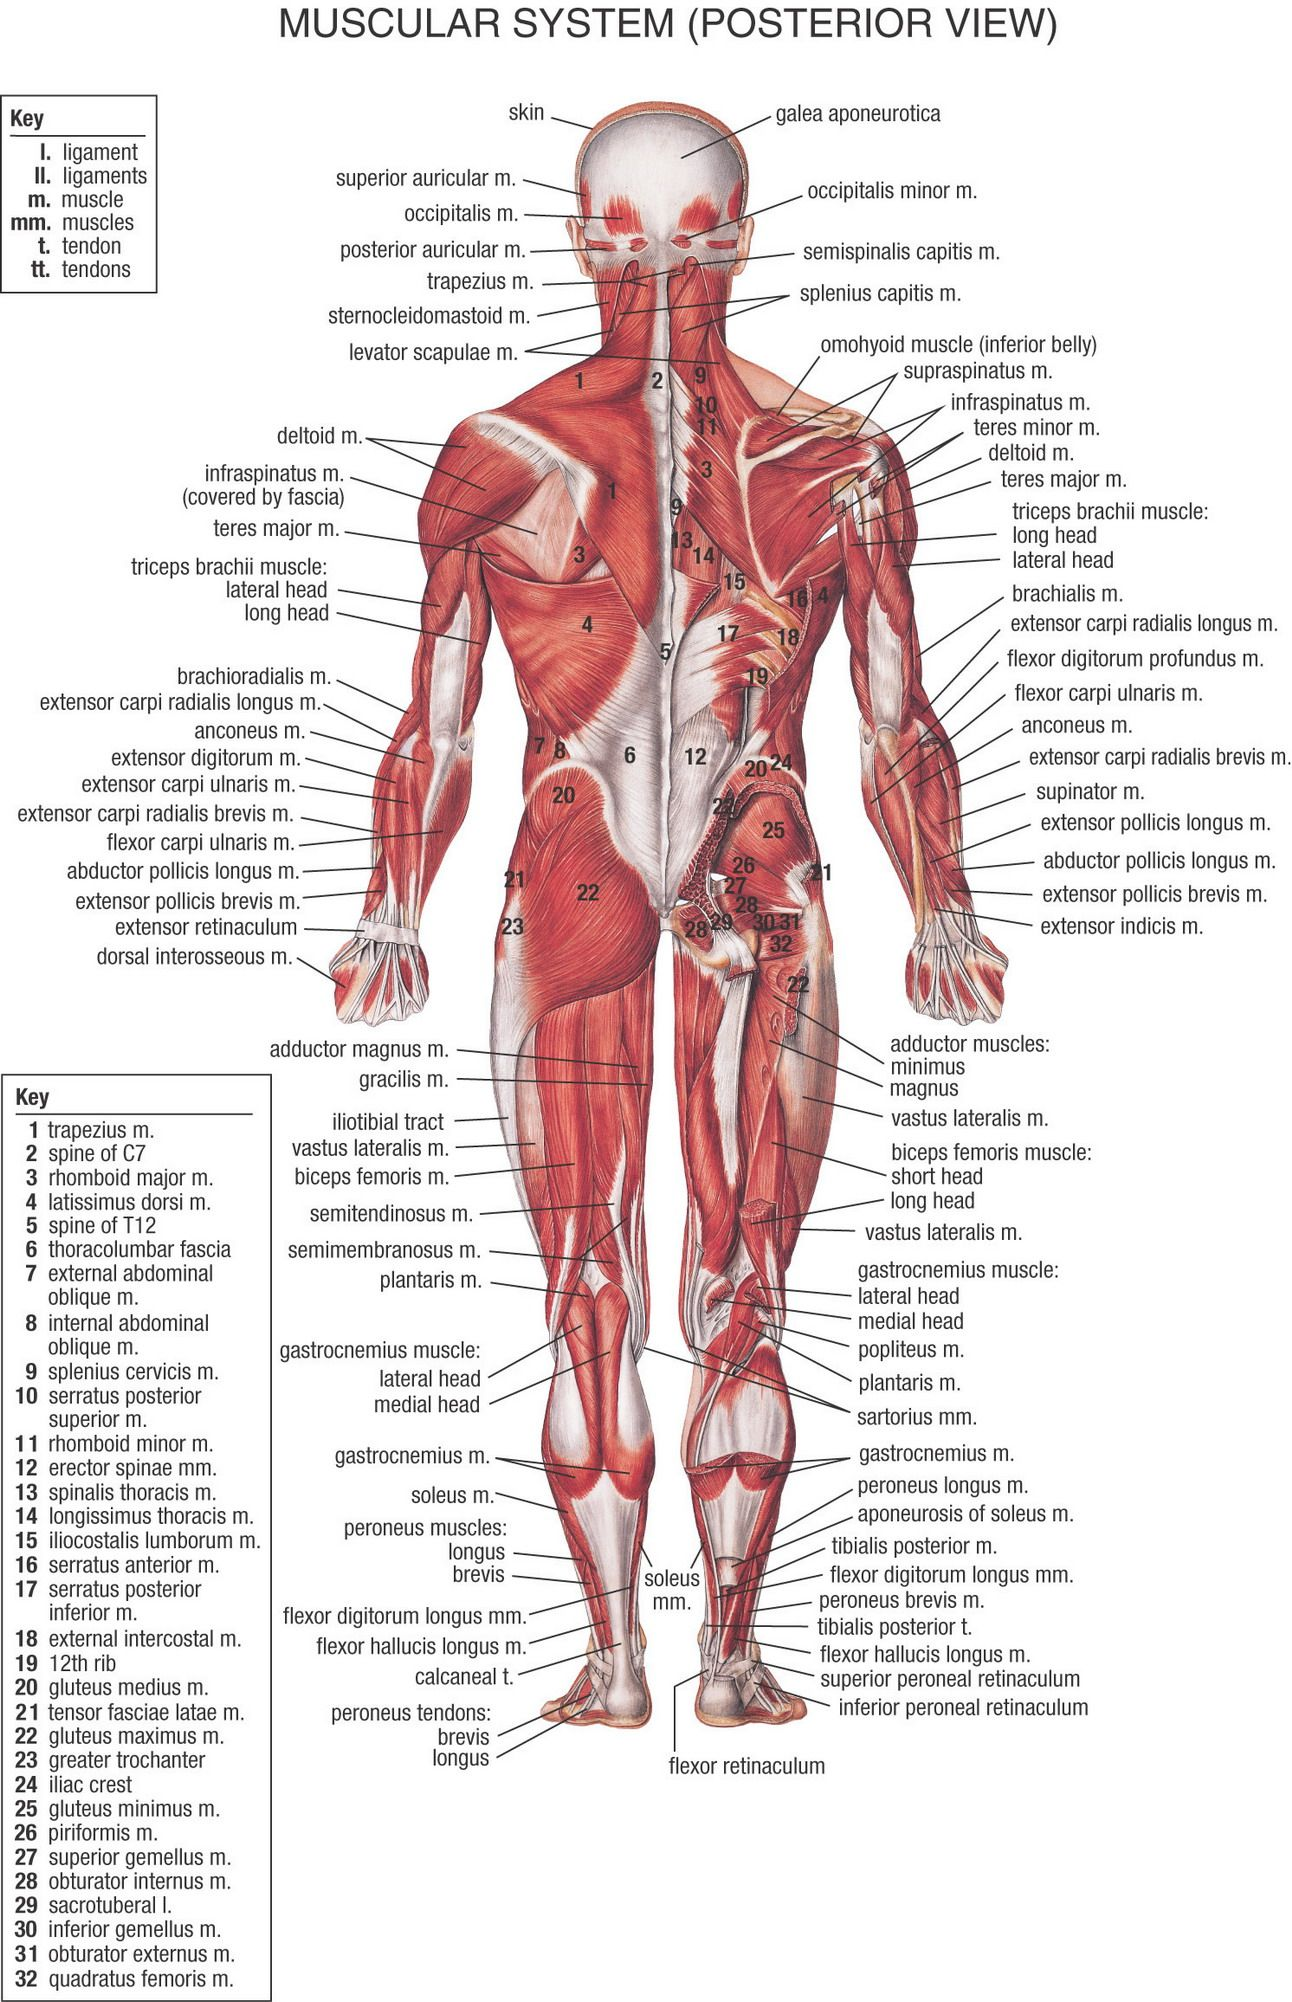 muscular system (posterior view) | Anatomy & Physiology | Pinterest ...